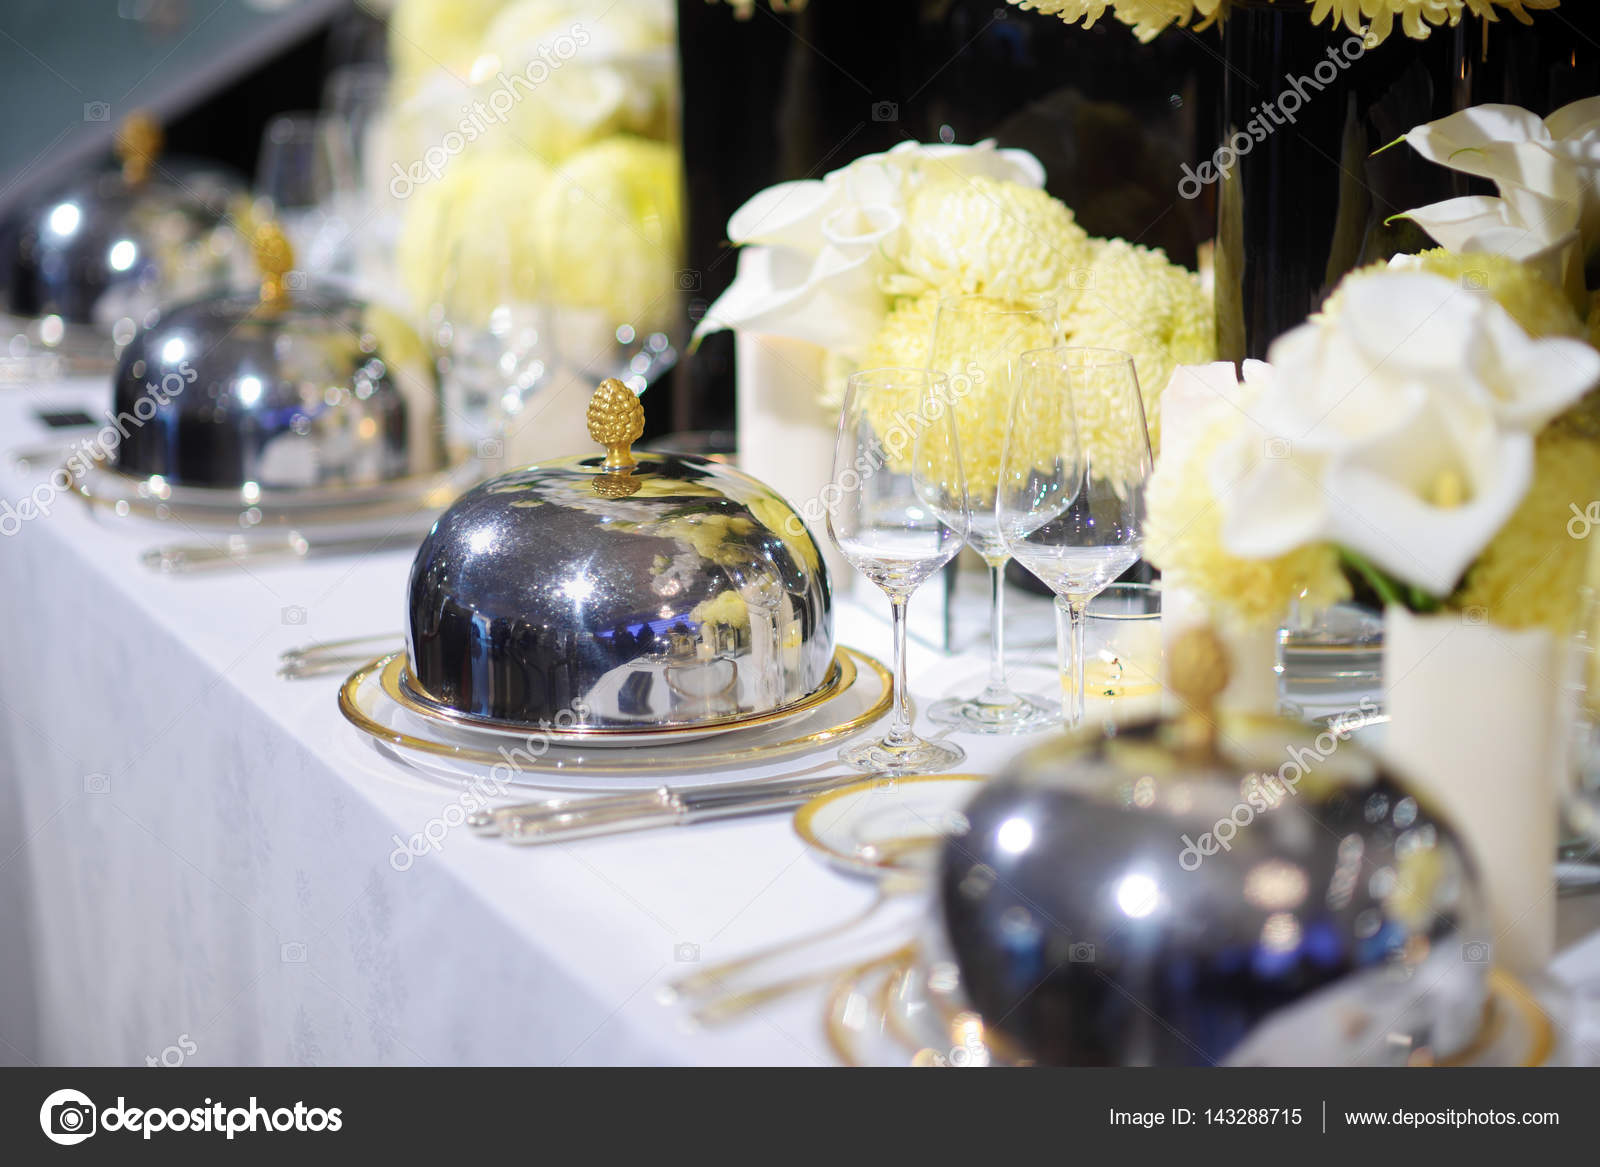 Beautiful table setting with crockery and flowers for a party wedding reception or other festive event. Glassware and cutlery for catered event dinner ... & Beautiful table setting with crockery and flowers u2014 Stock Photo ...